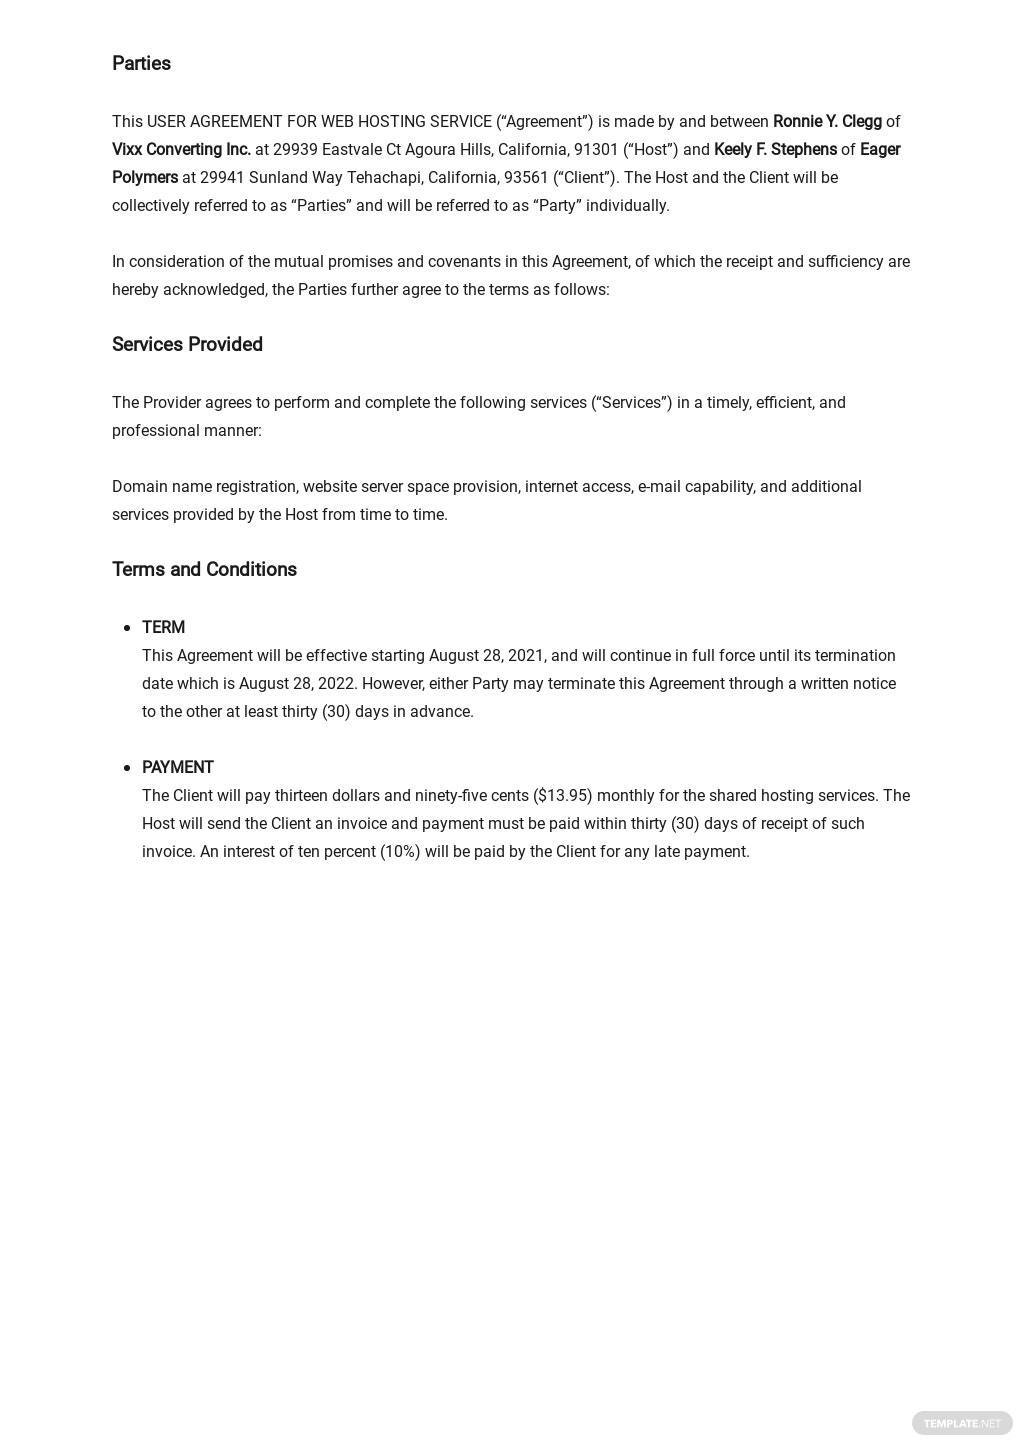 User Agreement for Web Hosting Service Template 1.jpe